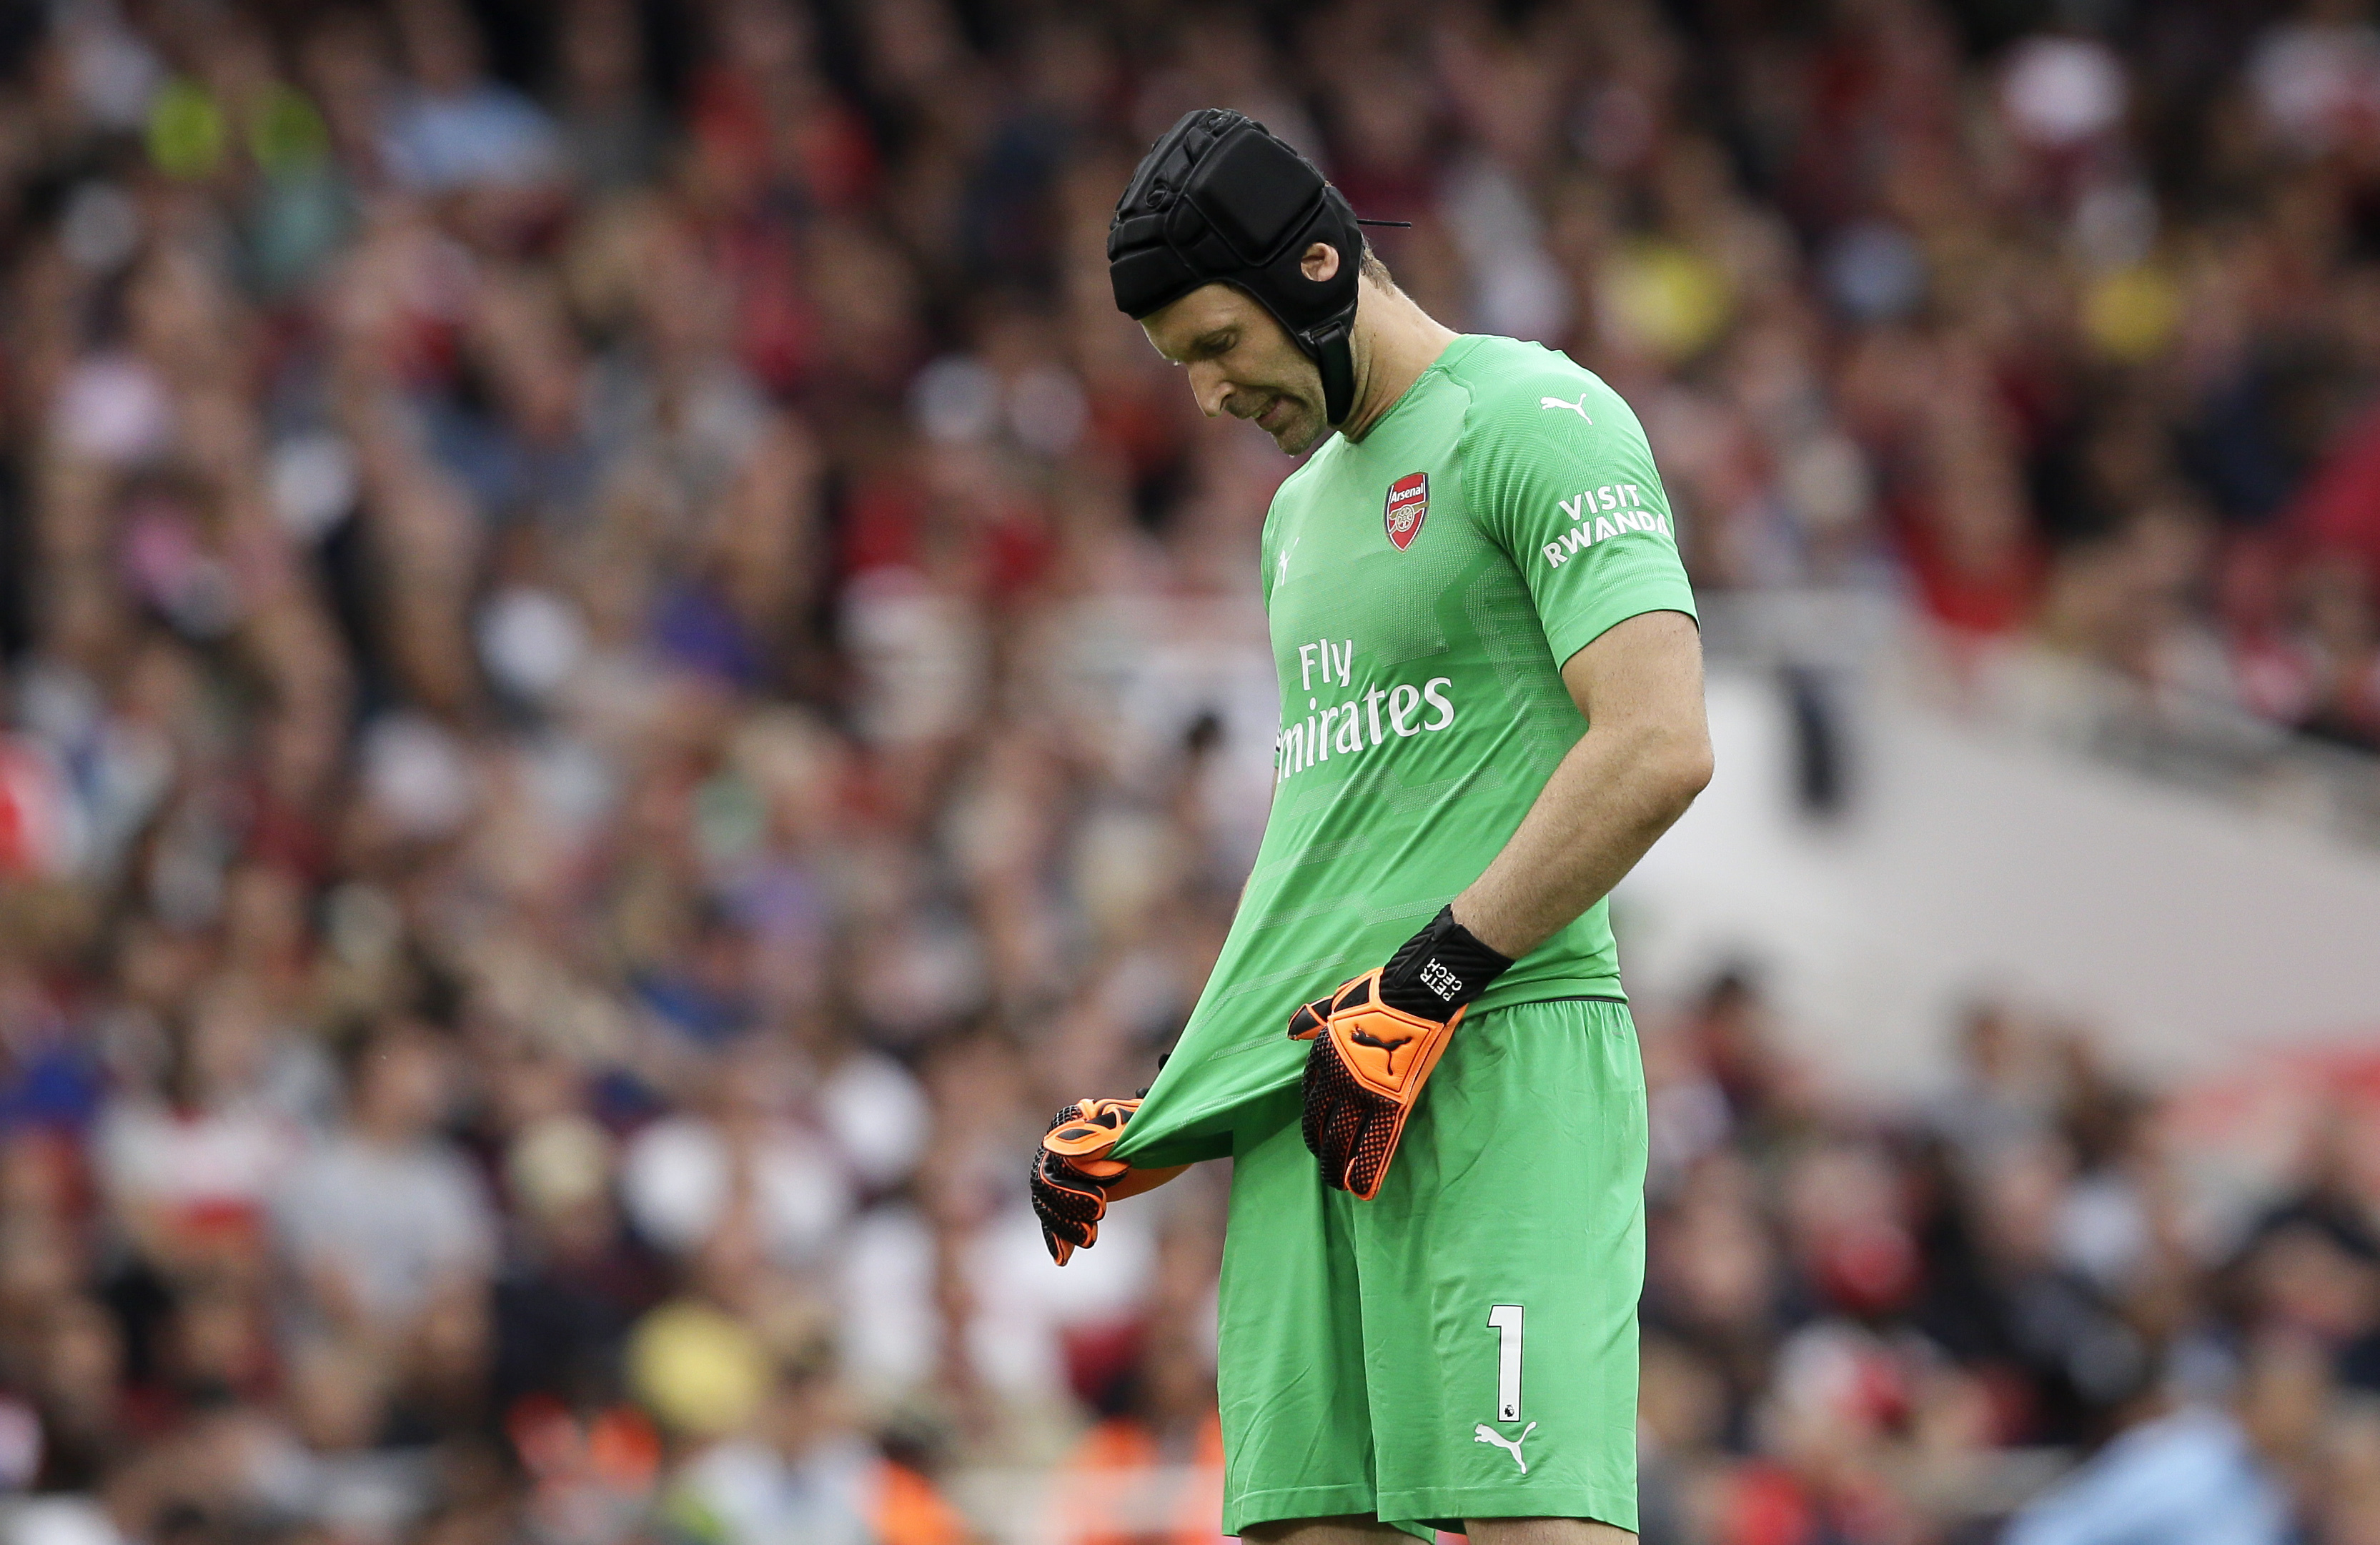 Cech didn't have a good time against City. Image PA Images